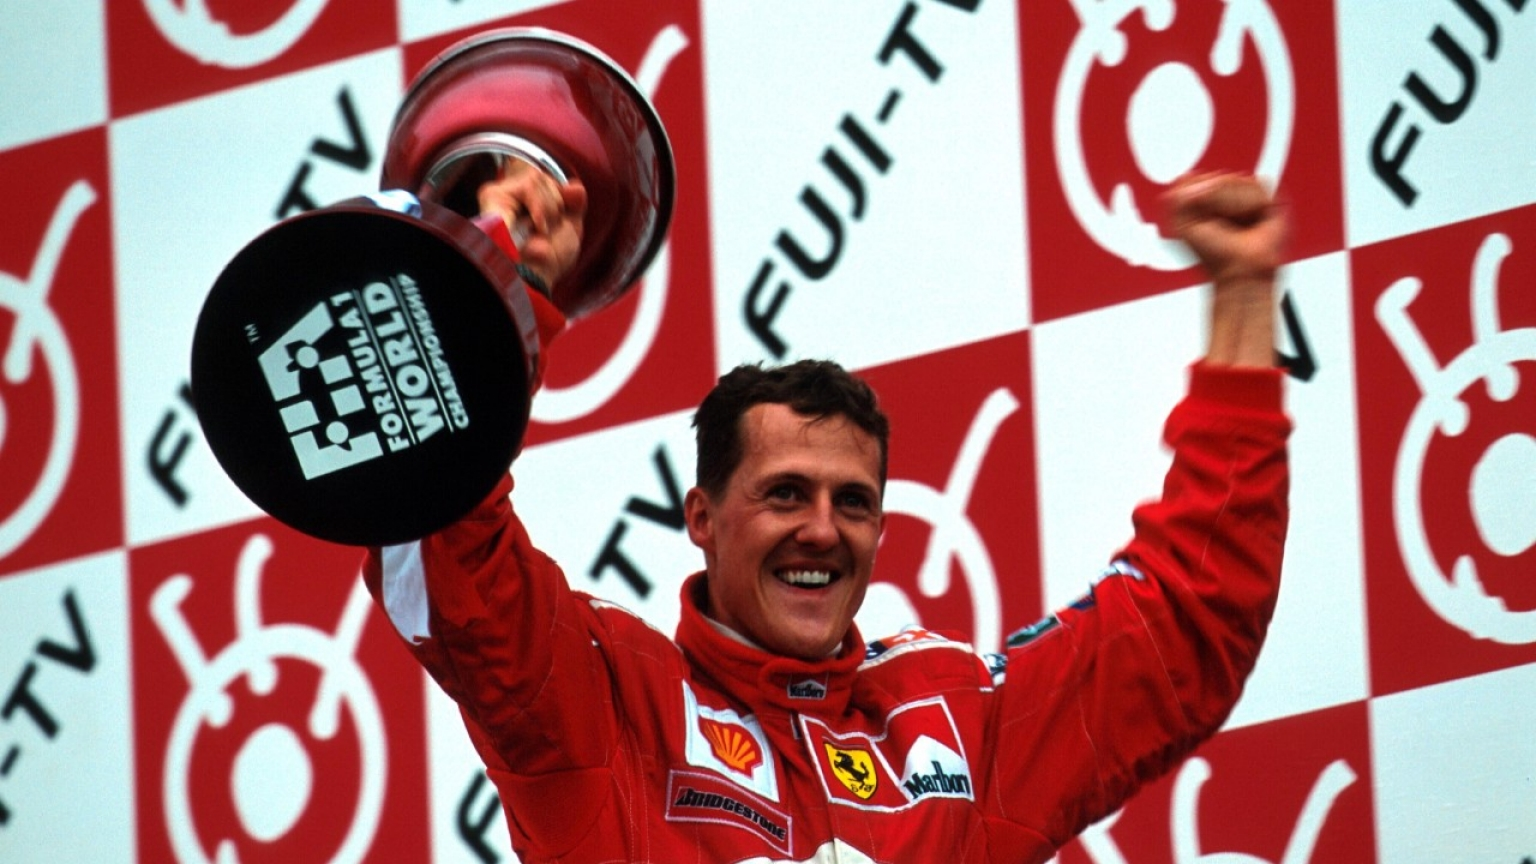 Personal life of Michael Schumacher and favorite hobbies 21